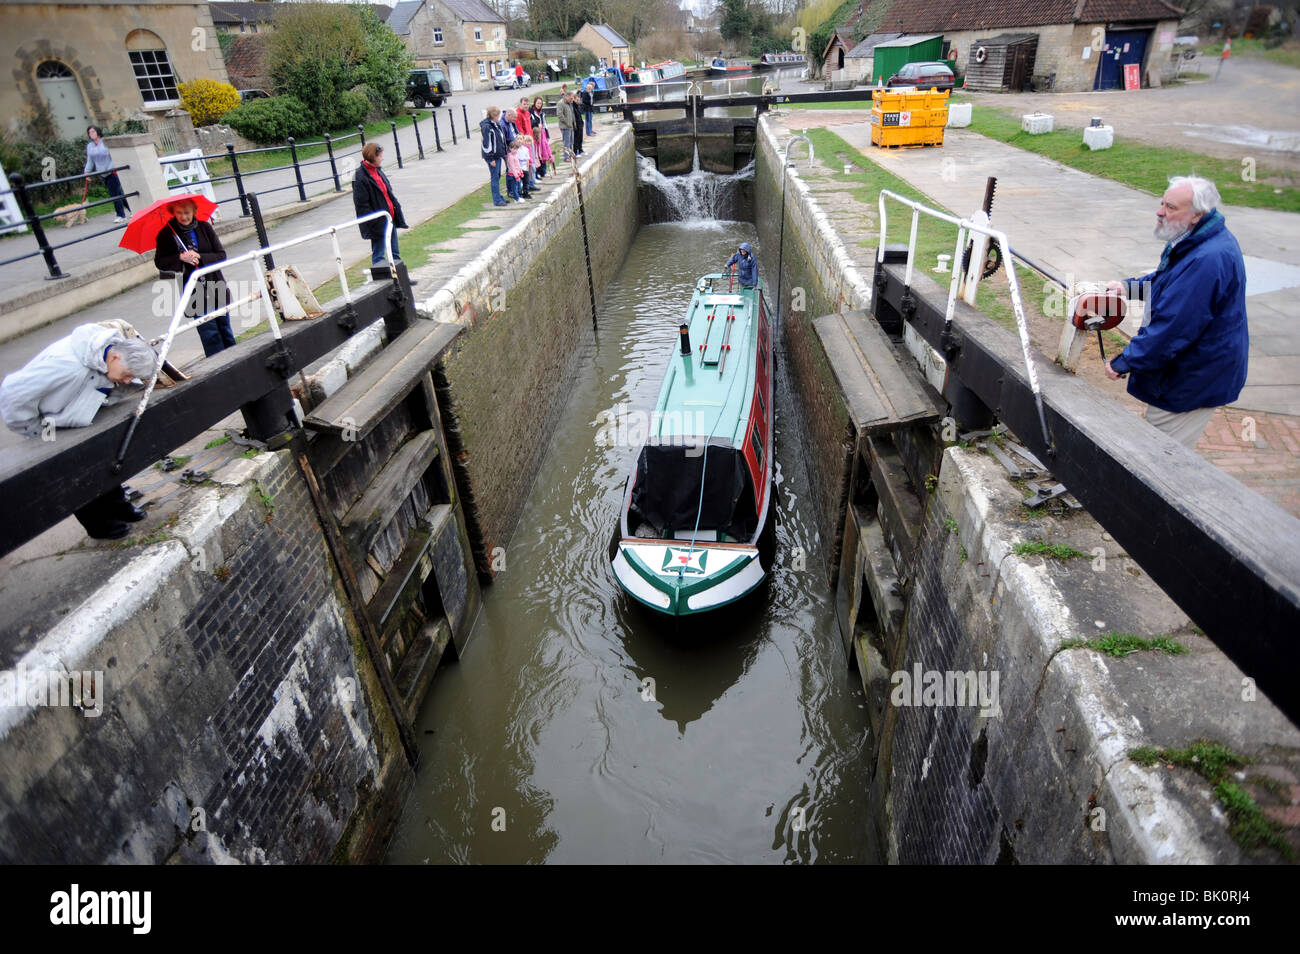 A boat using the lock gates on the Kennet and Avon canal at Bradford on Avon - Stock Image